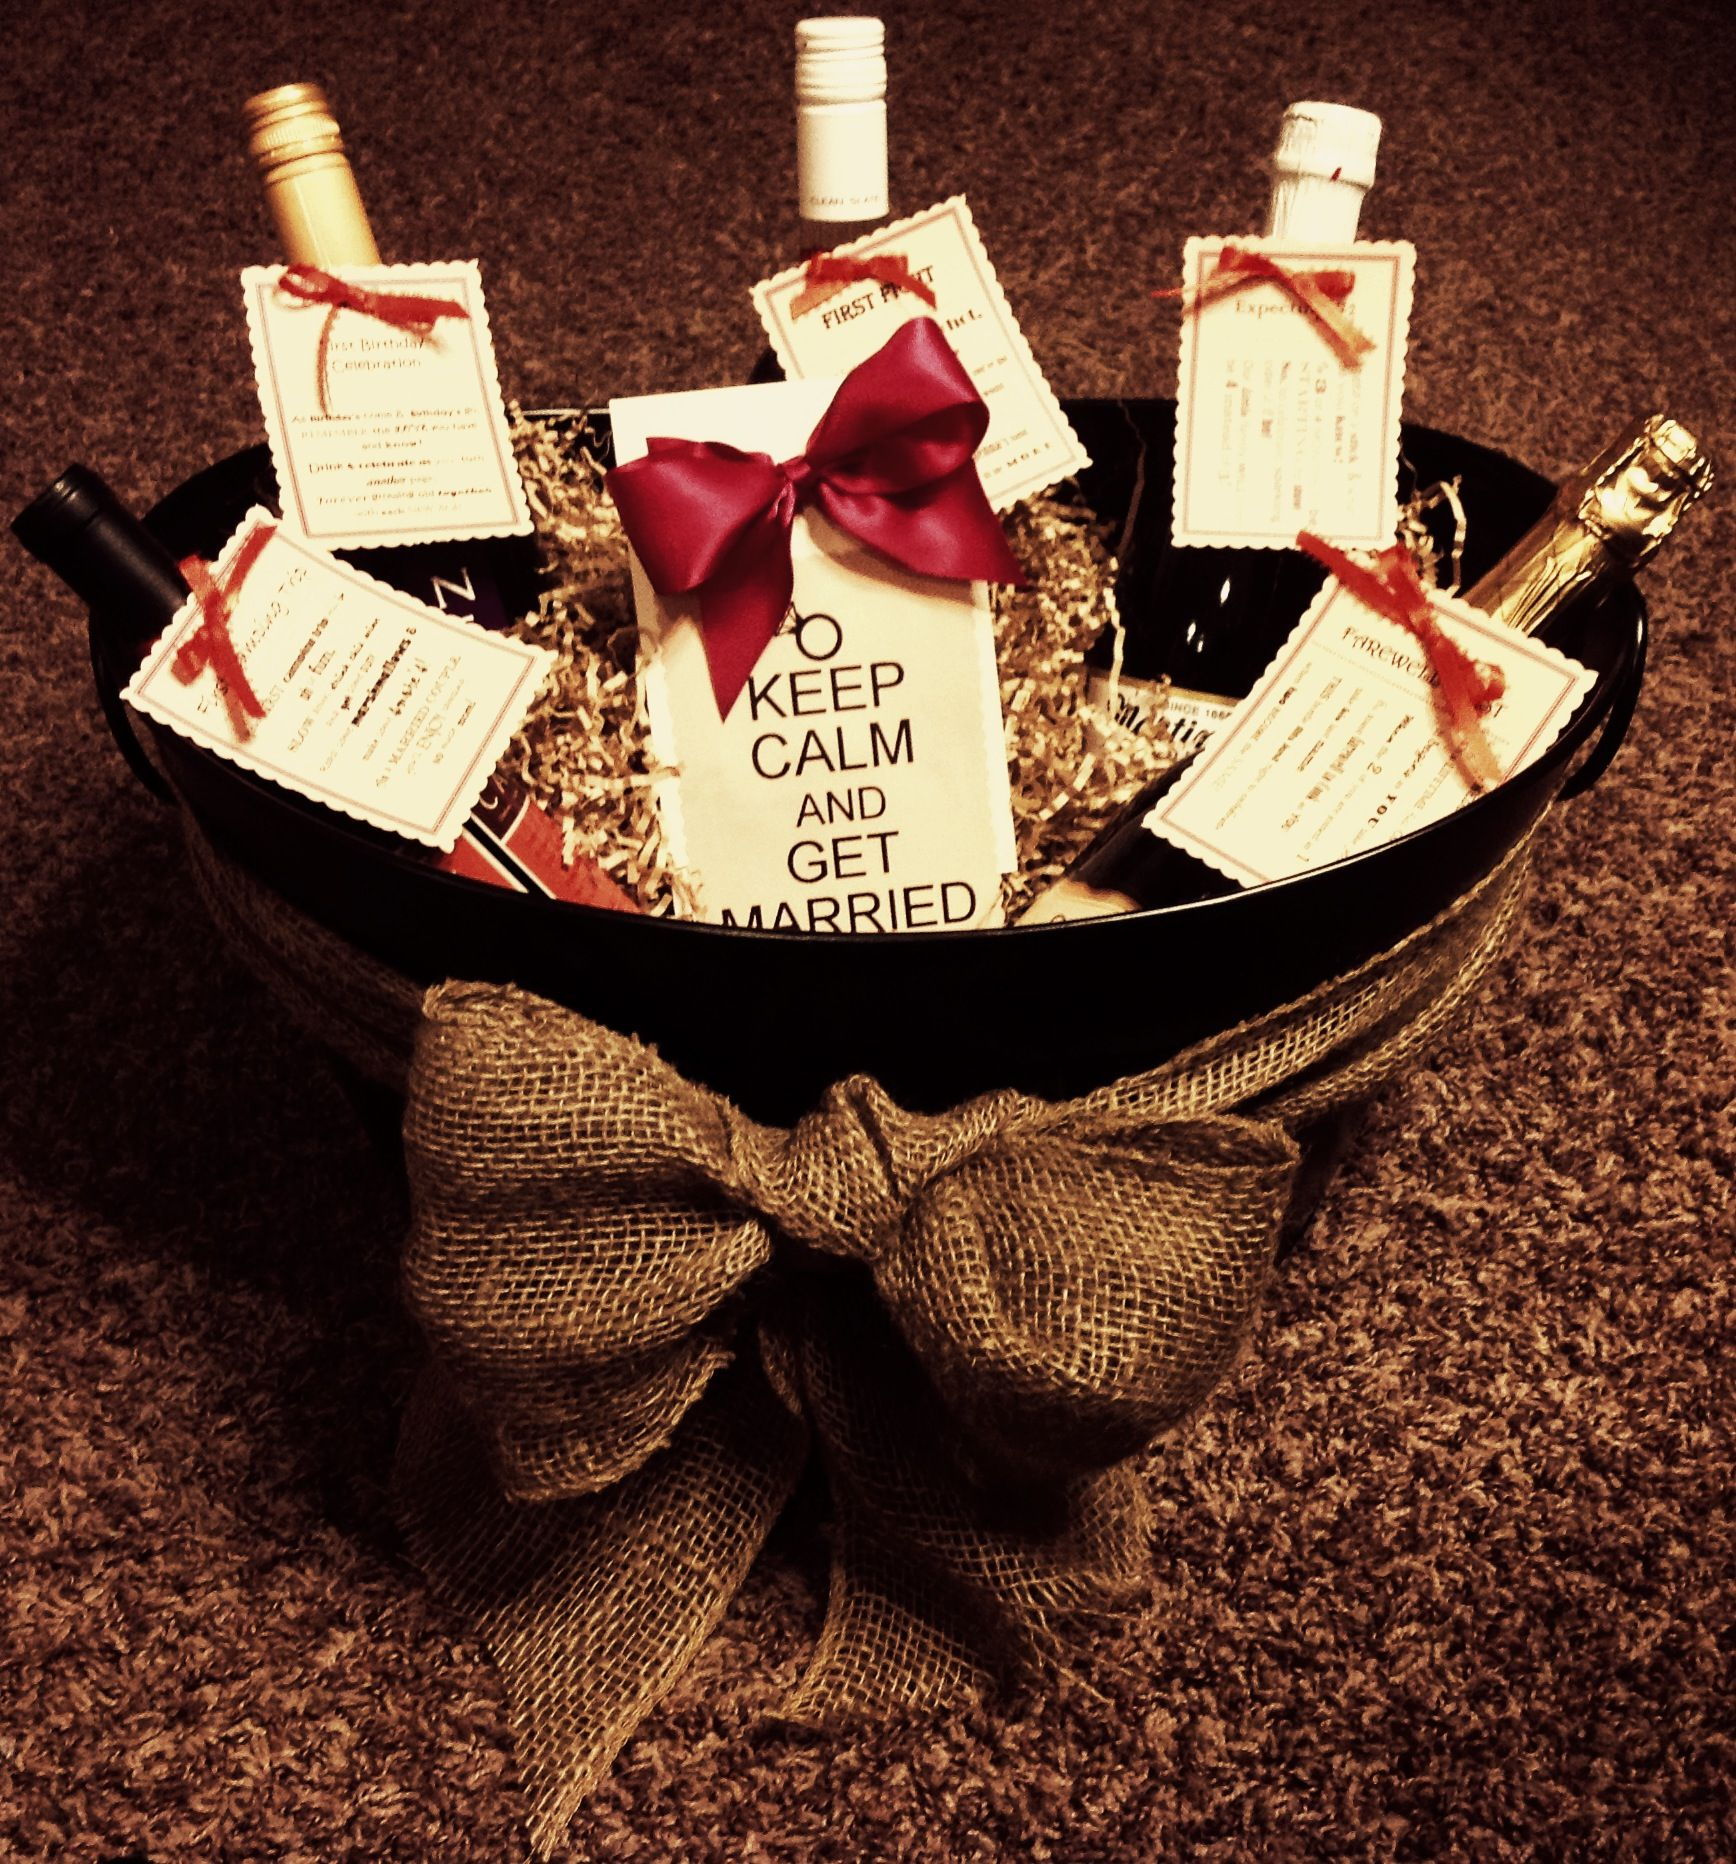 Pinterest Wedding Shower Gift Basket Ideas : Bridal Shower Gift Basket The Crafty Crafter Pinterest